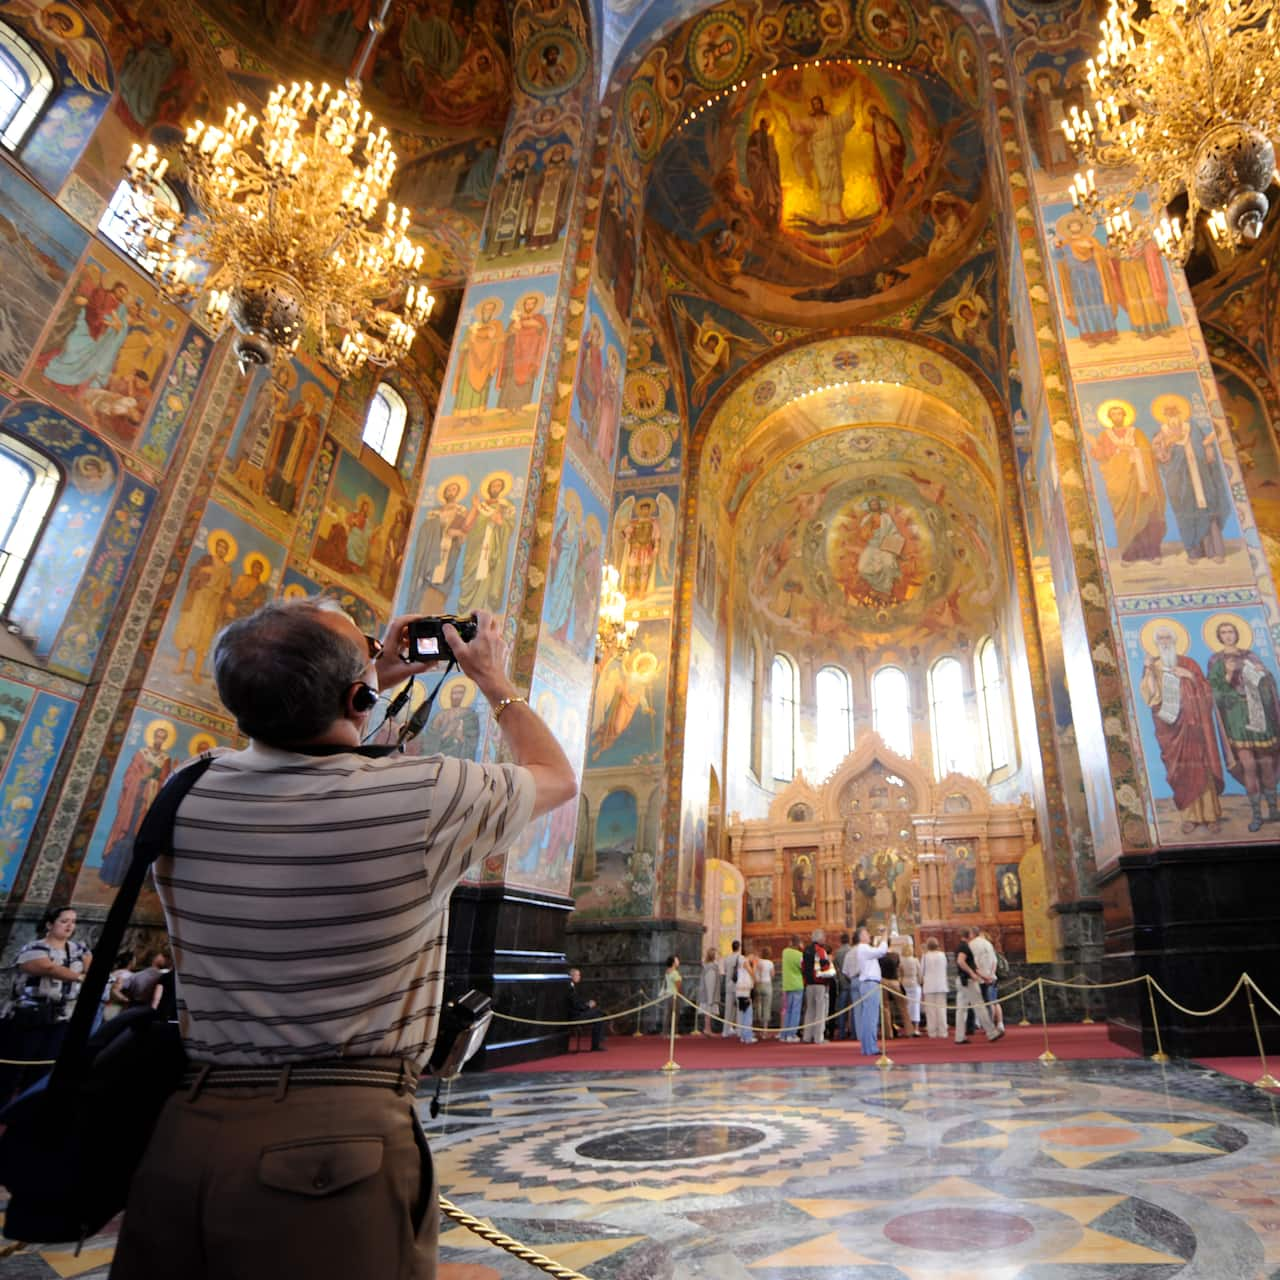 A man takes a photo of the murals and ornate interior décor of the Church of the Savior on Spilled Blood in St. Petersburg, Russia